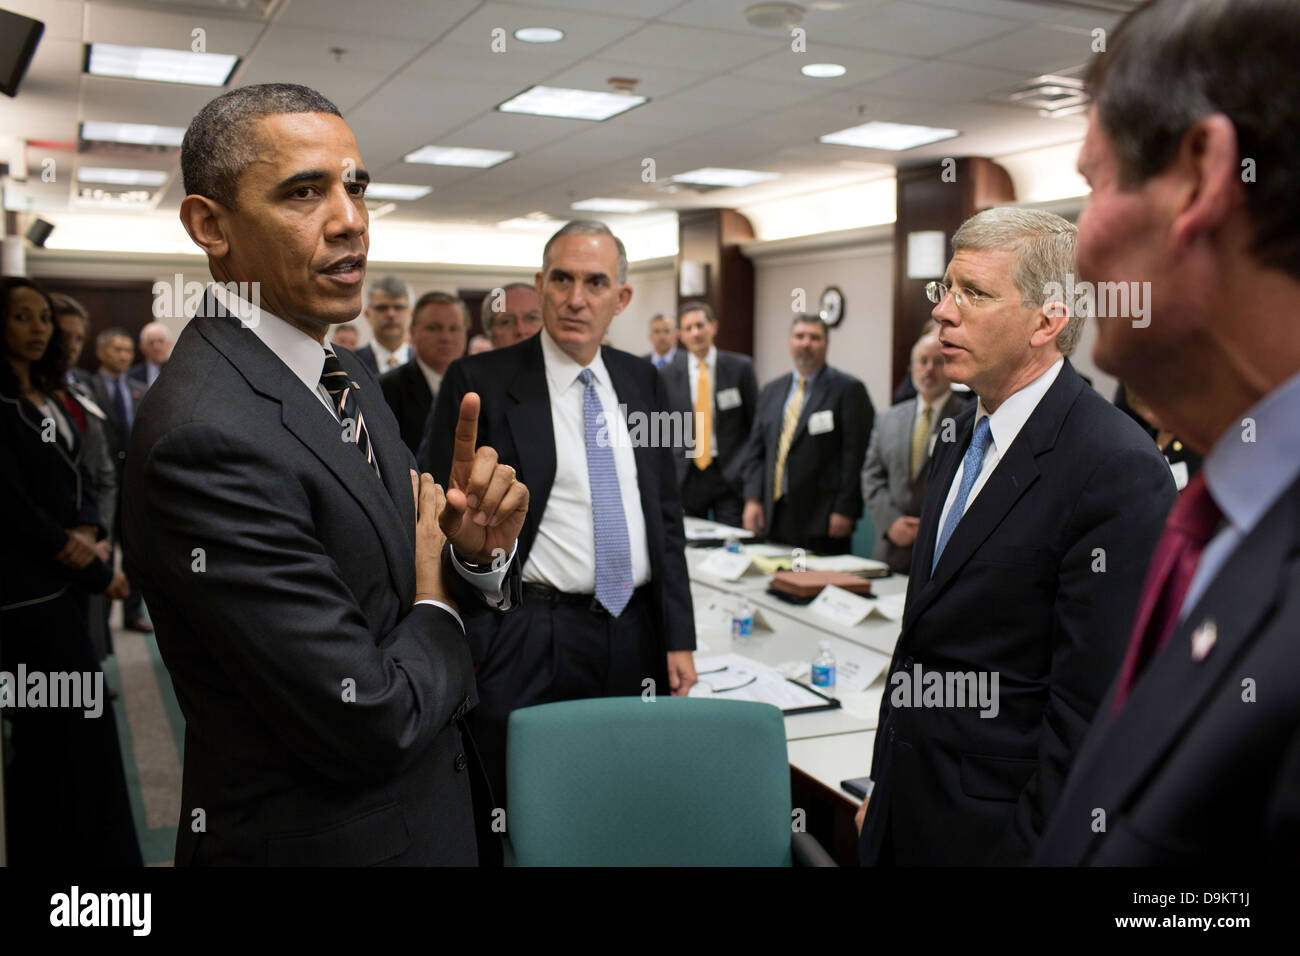 US President Barack Obama talks with electric utility executives and trade association representatives before a - Stock Image